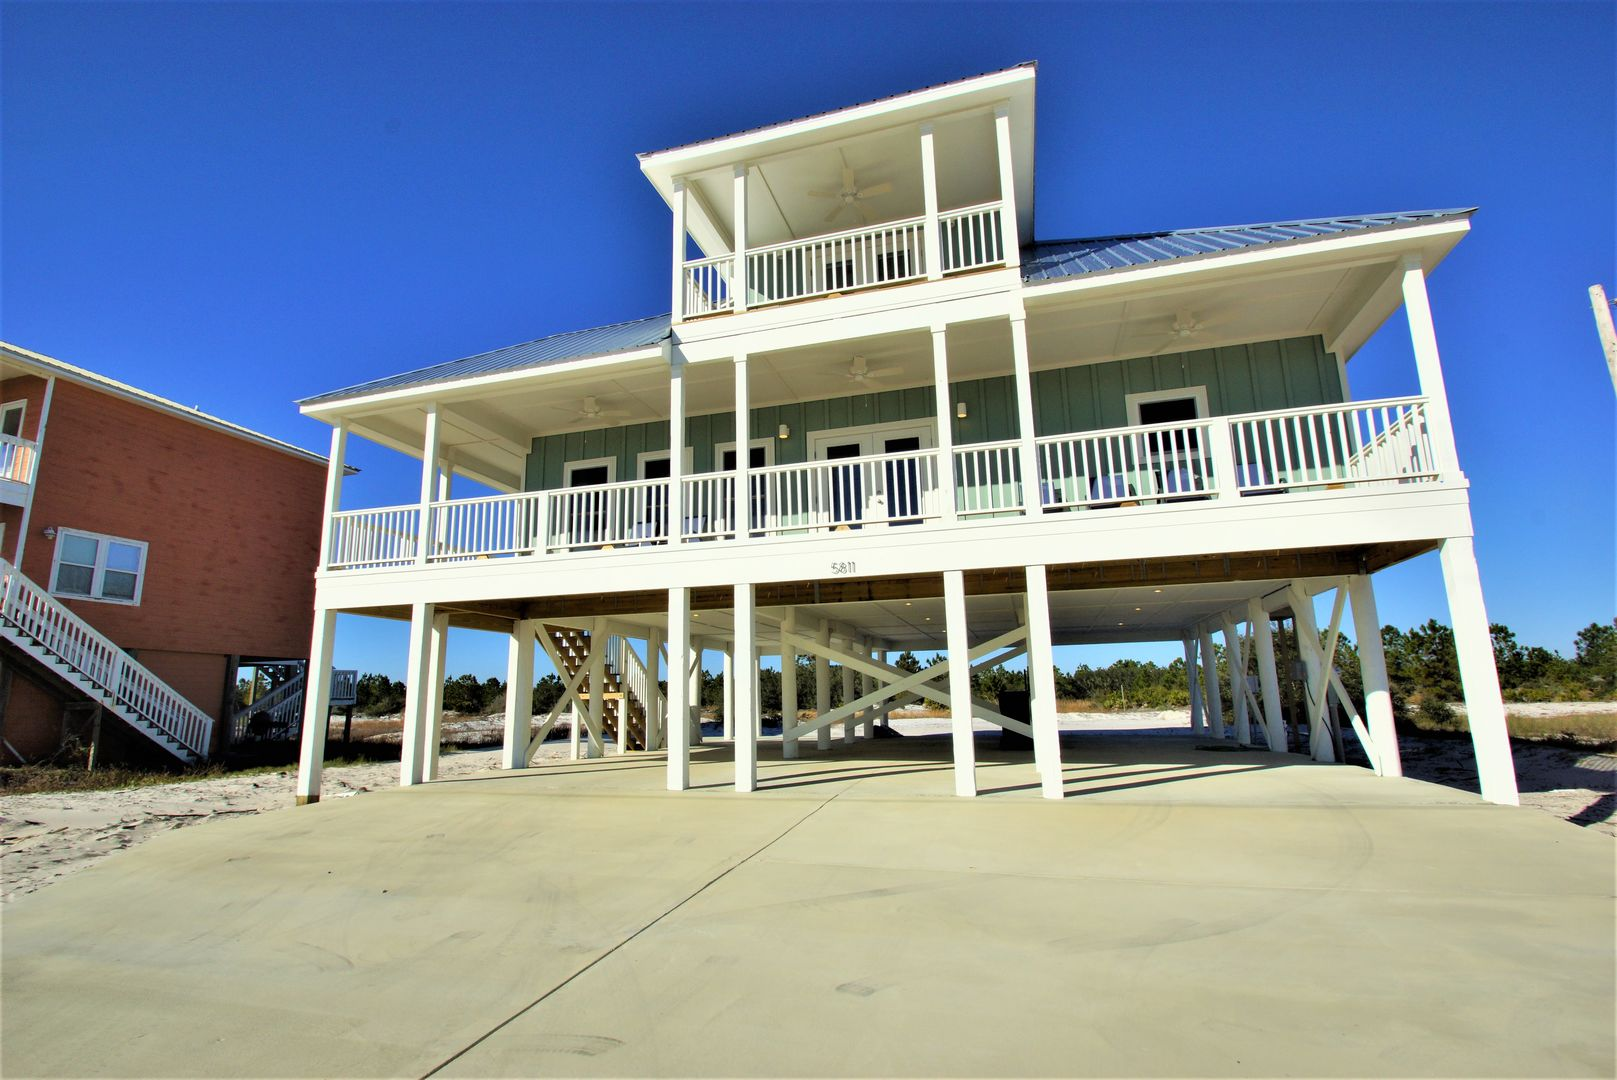 This Vacation Rental in Gulf Shores AL stands tall (picture of exterior)!